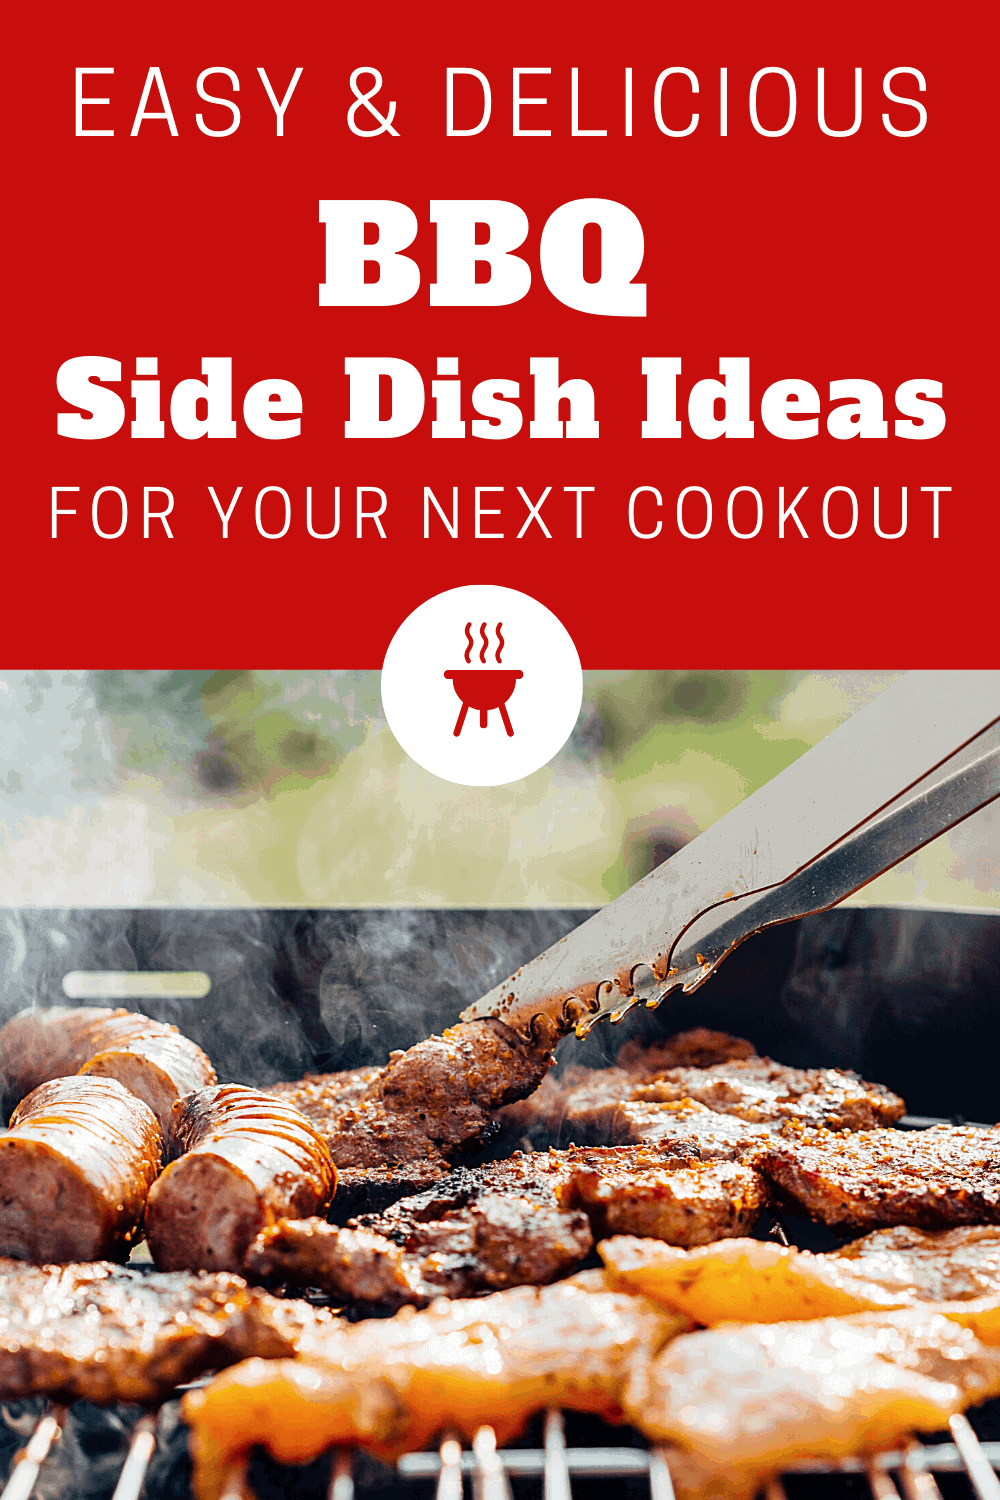 BBQ side dishes for a crowd! Everyone will love these easy and cheap summer side dishes at your next cookout, picnic, or potluck party.